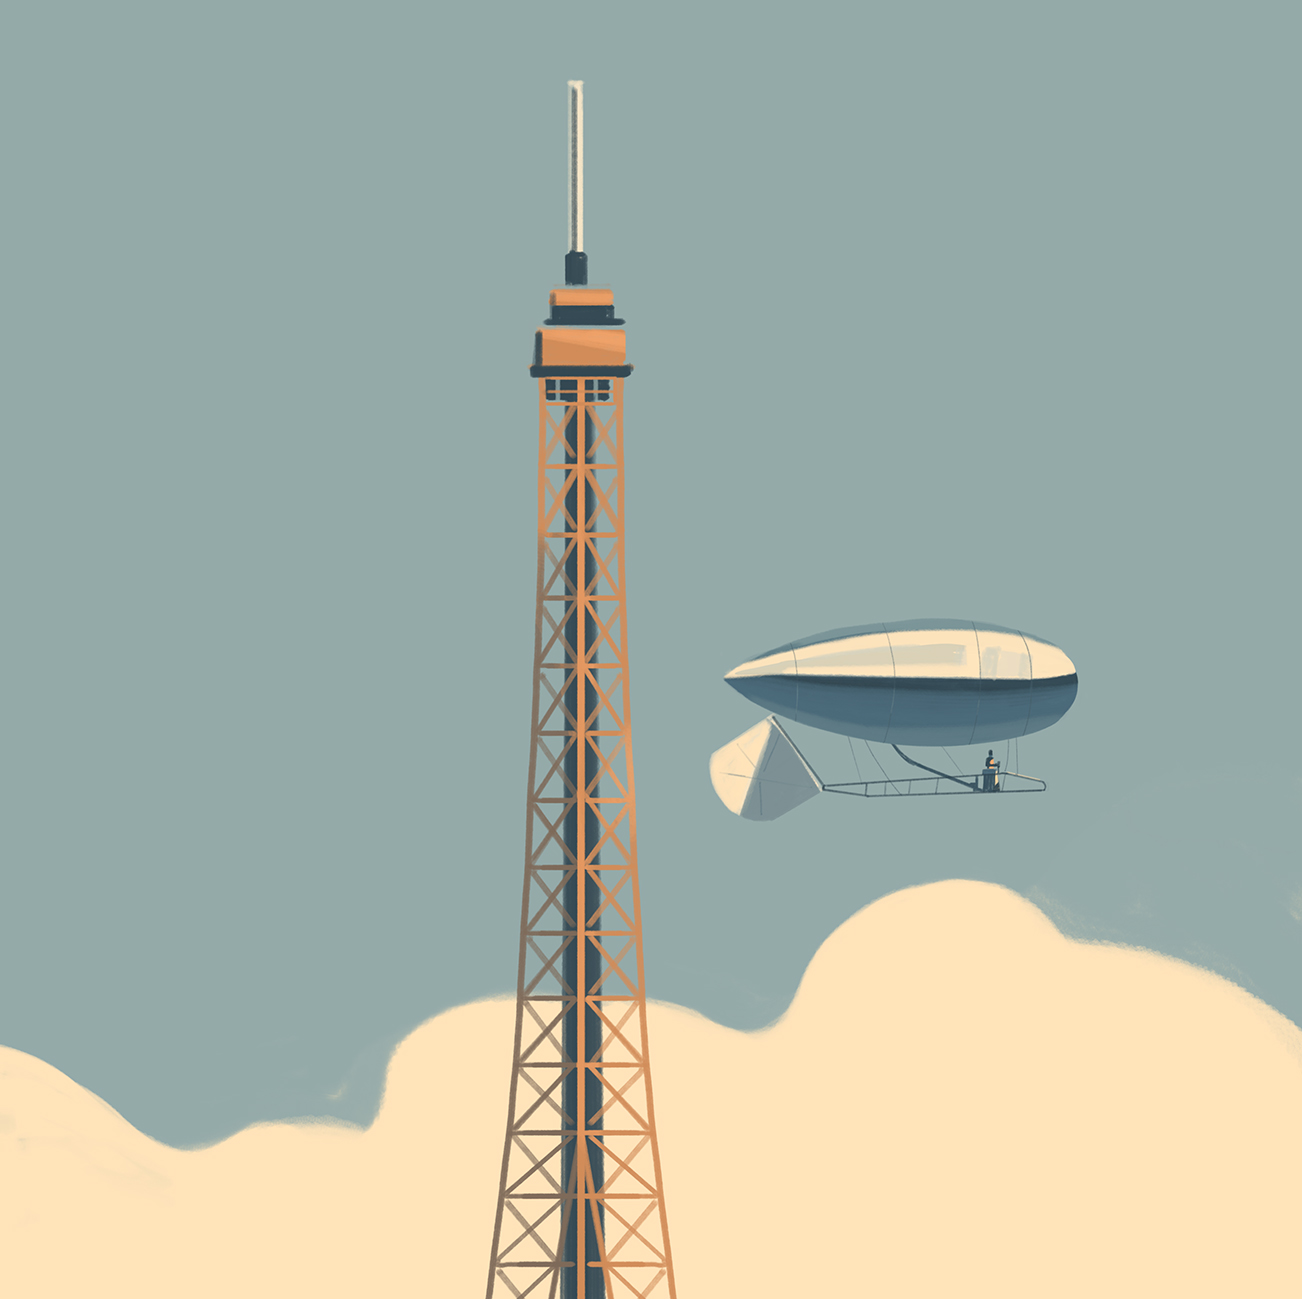 A story written in the clouds, Emiliano Ponzi 3